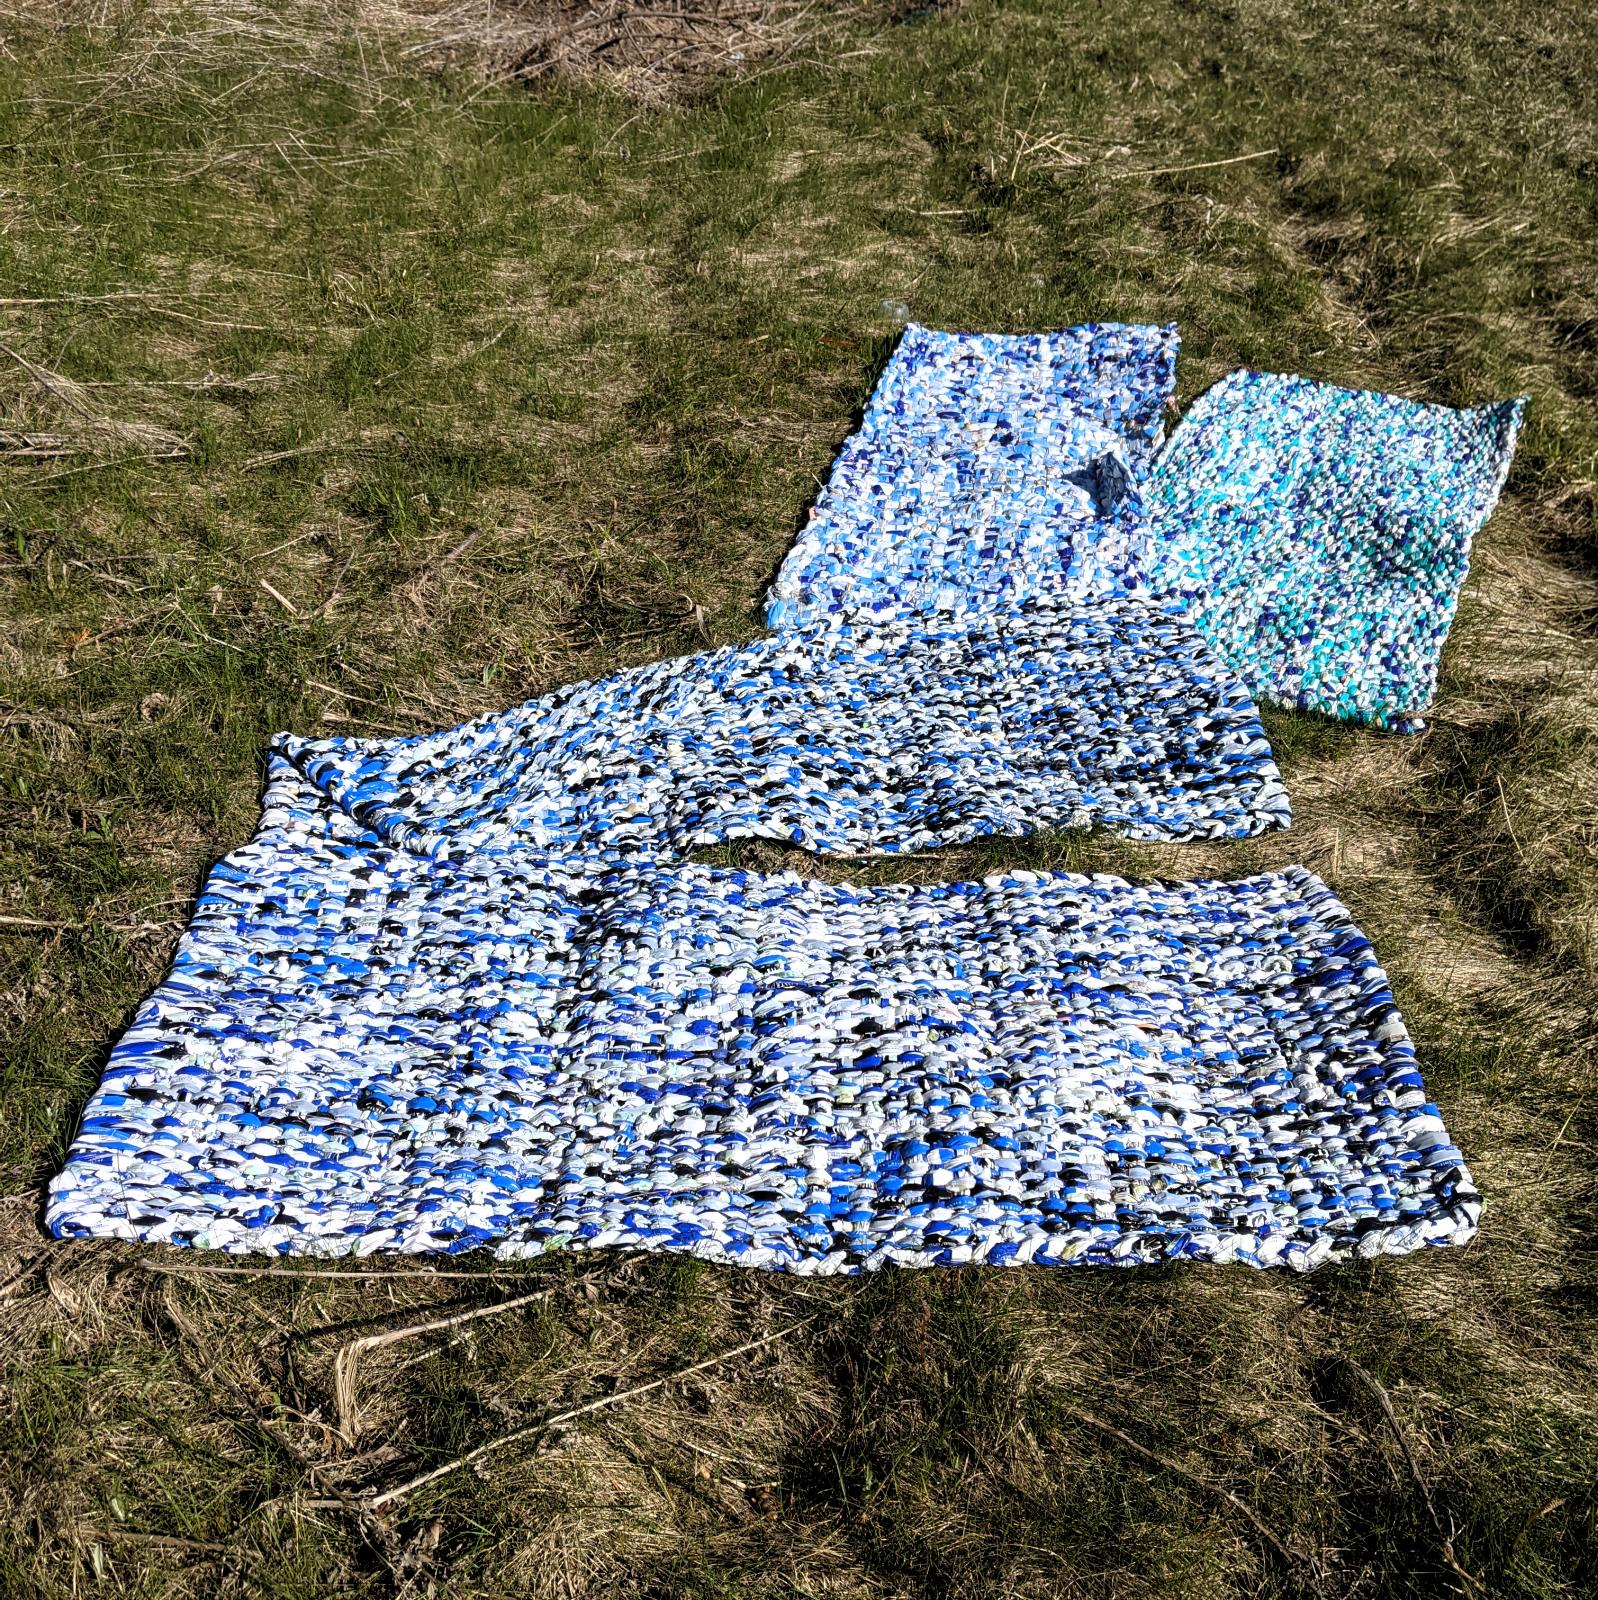 blankets woven from hundreds of milk outer bags: dark blue, light blue, white, yellow. Mats are laid out on tussocky grass